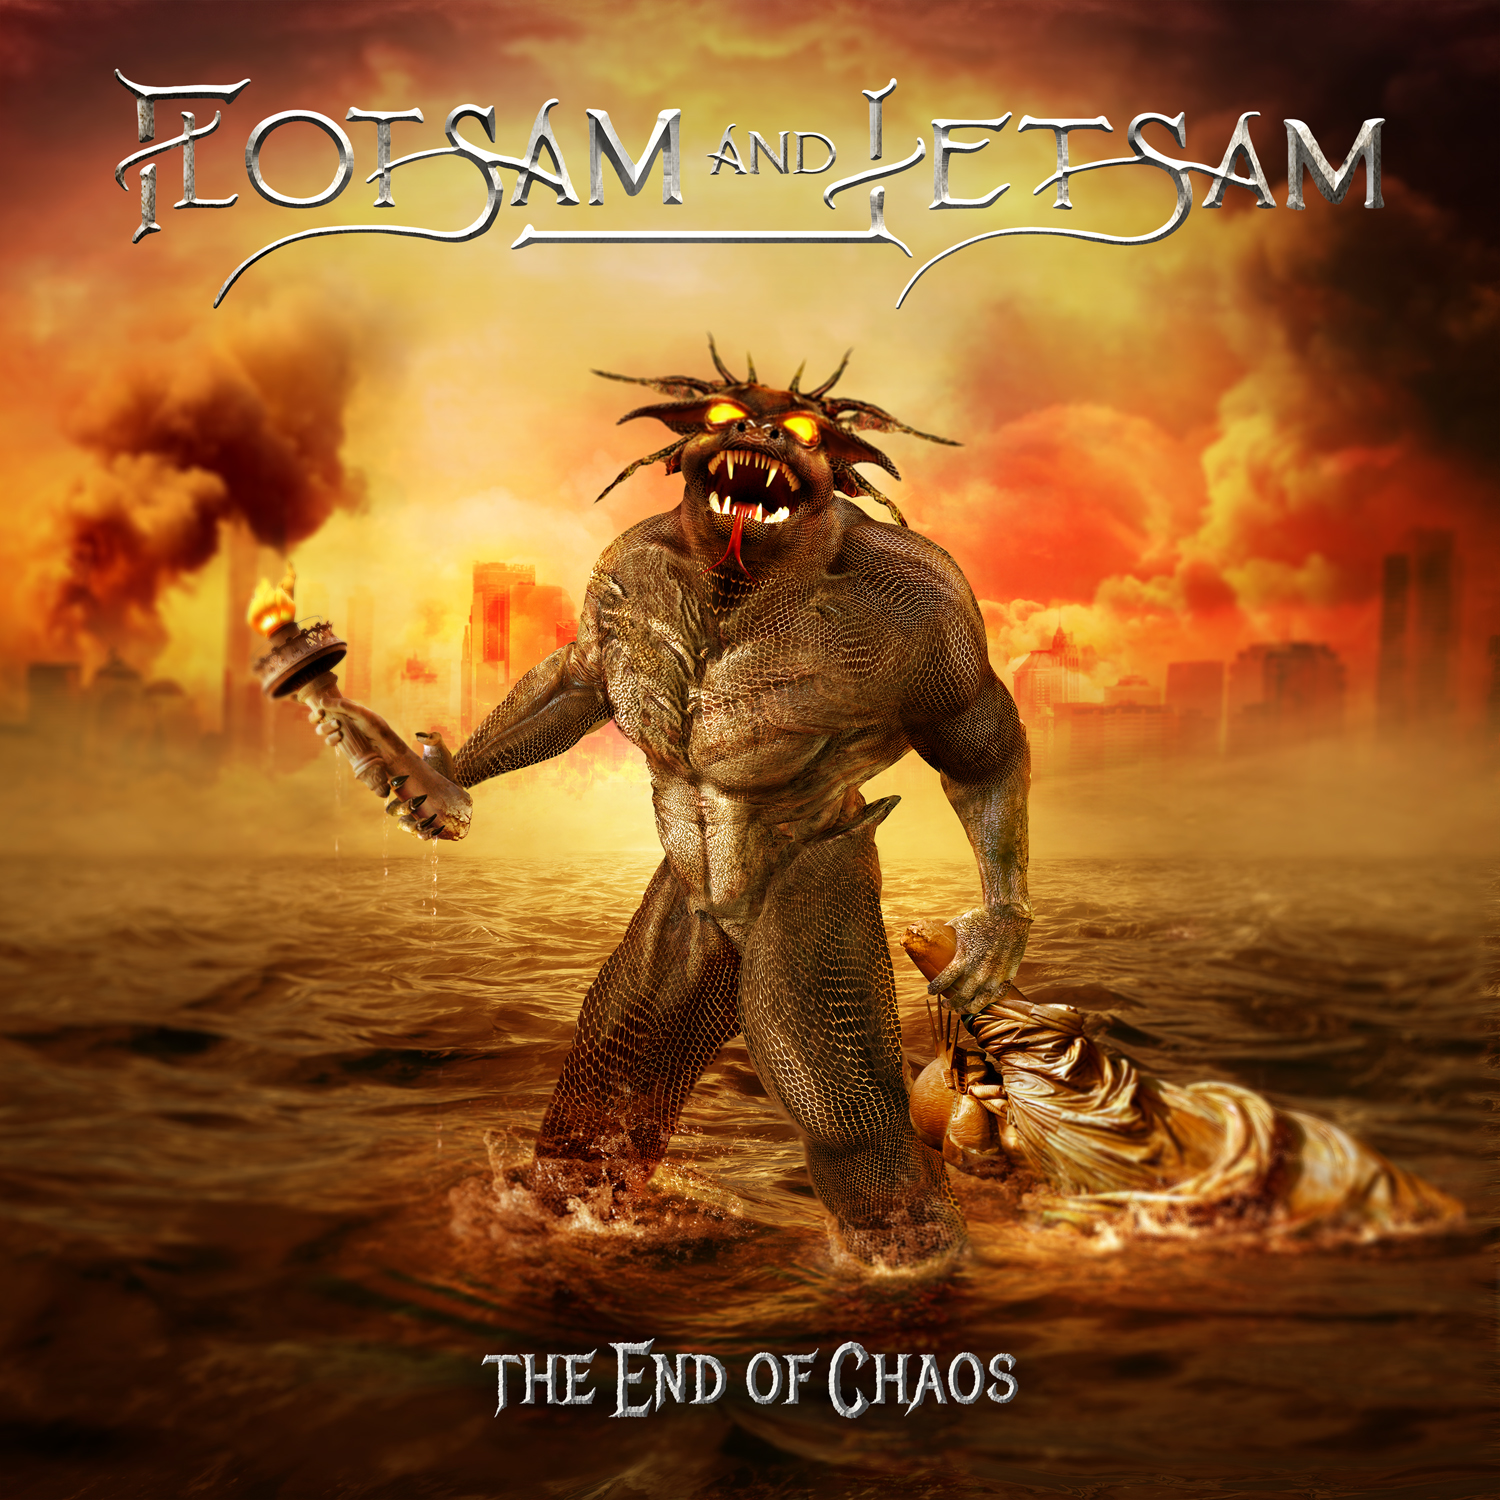 flotsam-jetsam-the-end-of-chaos-flotzilla-is-back-album-review